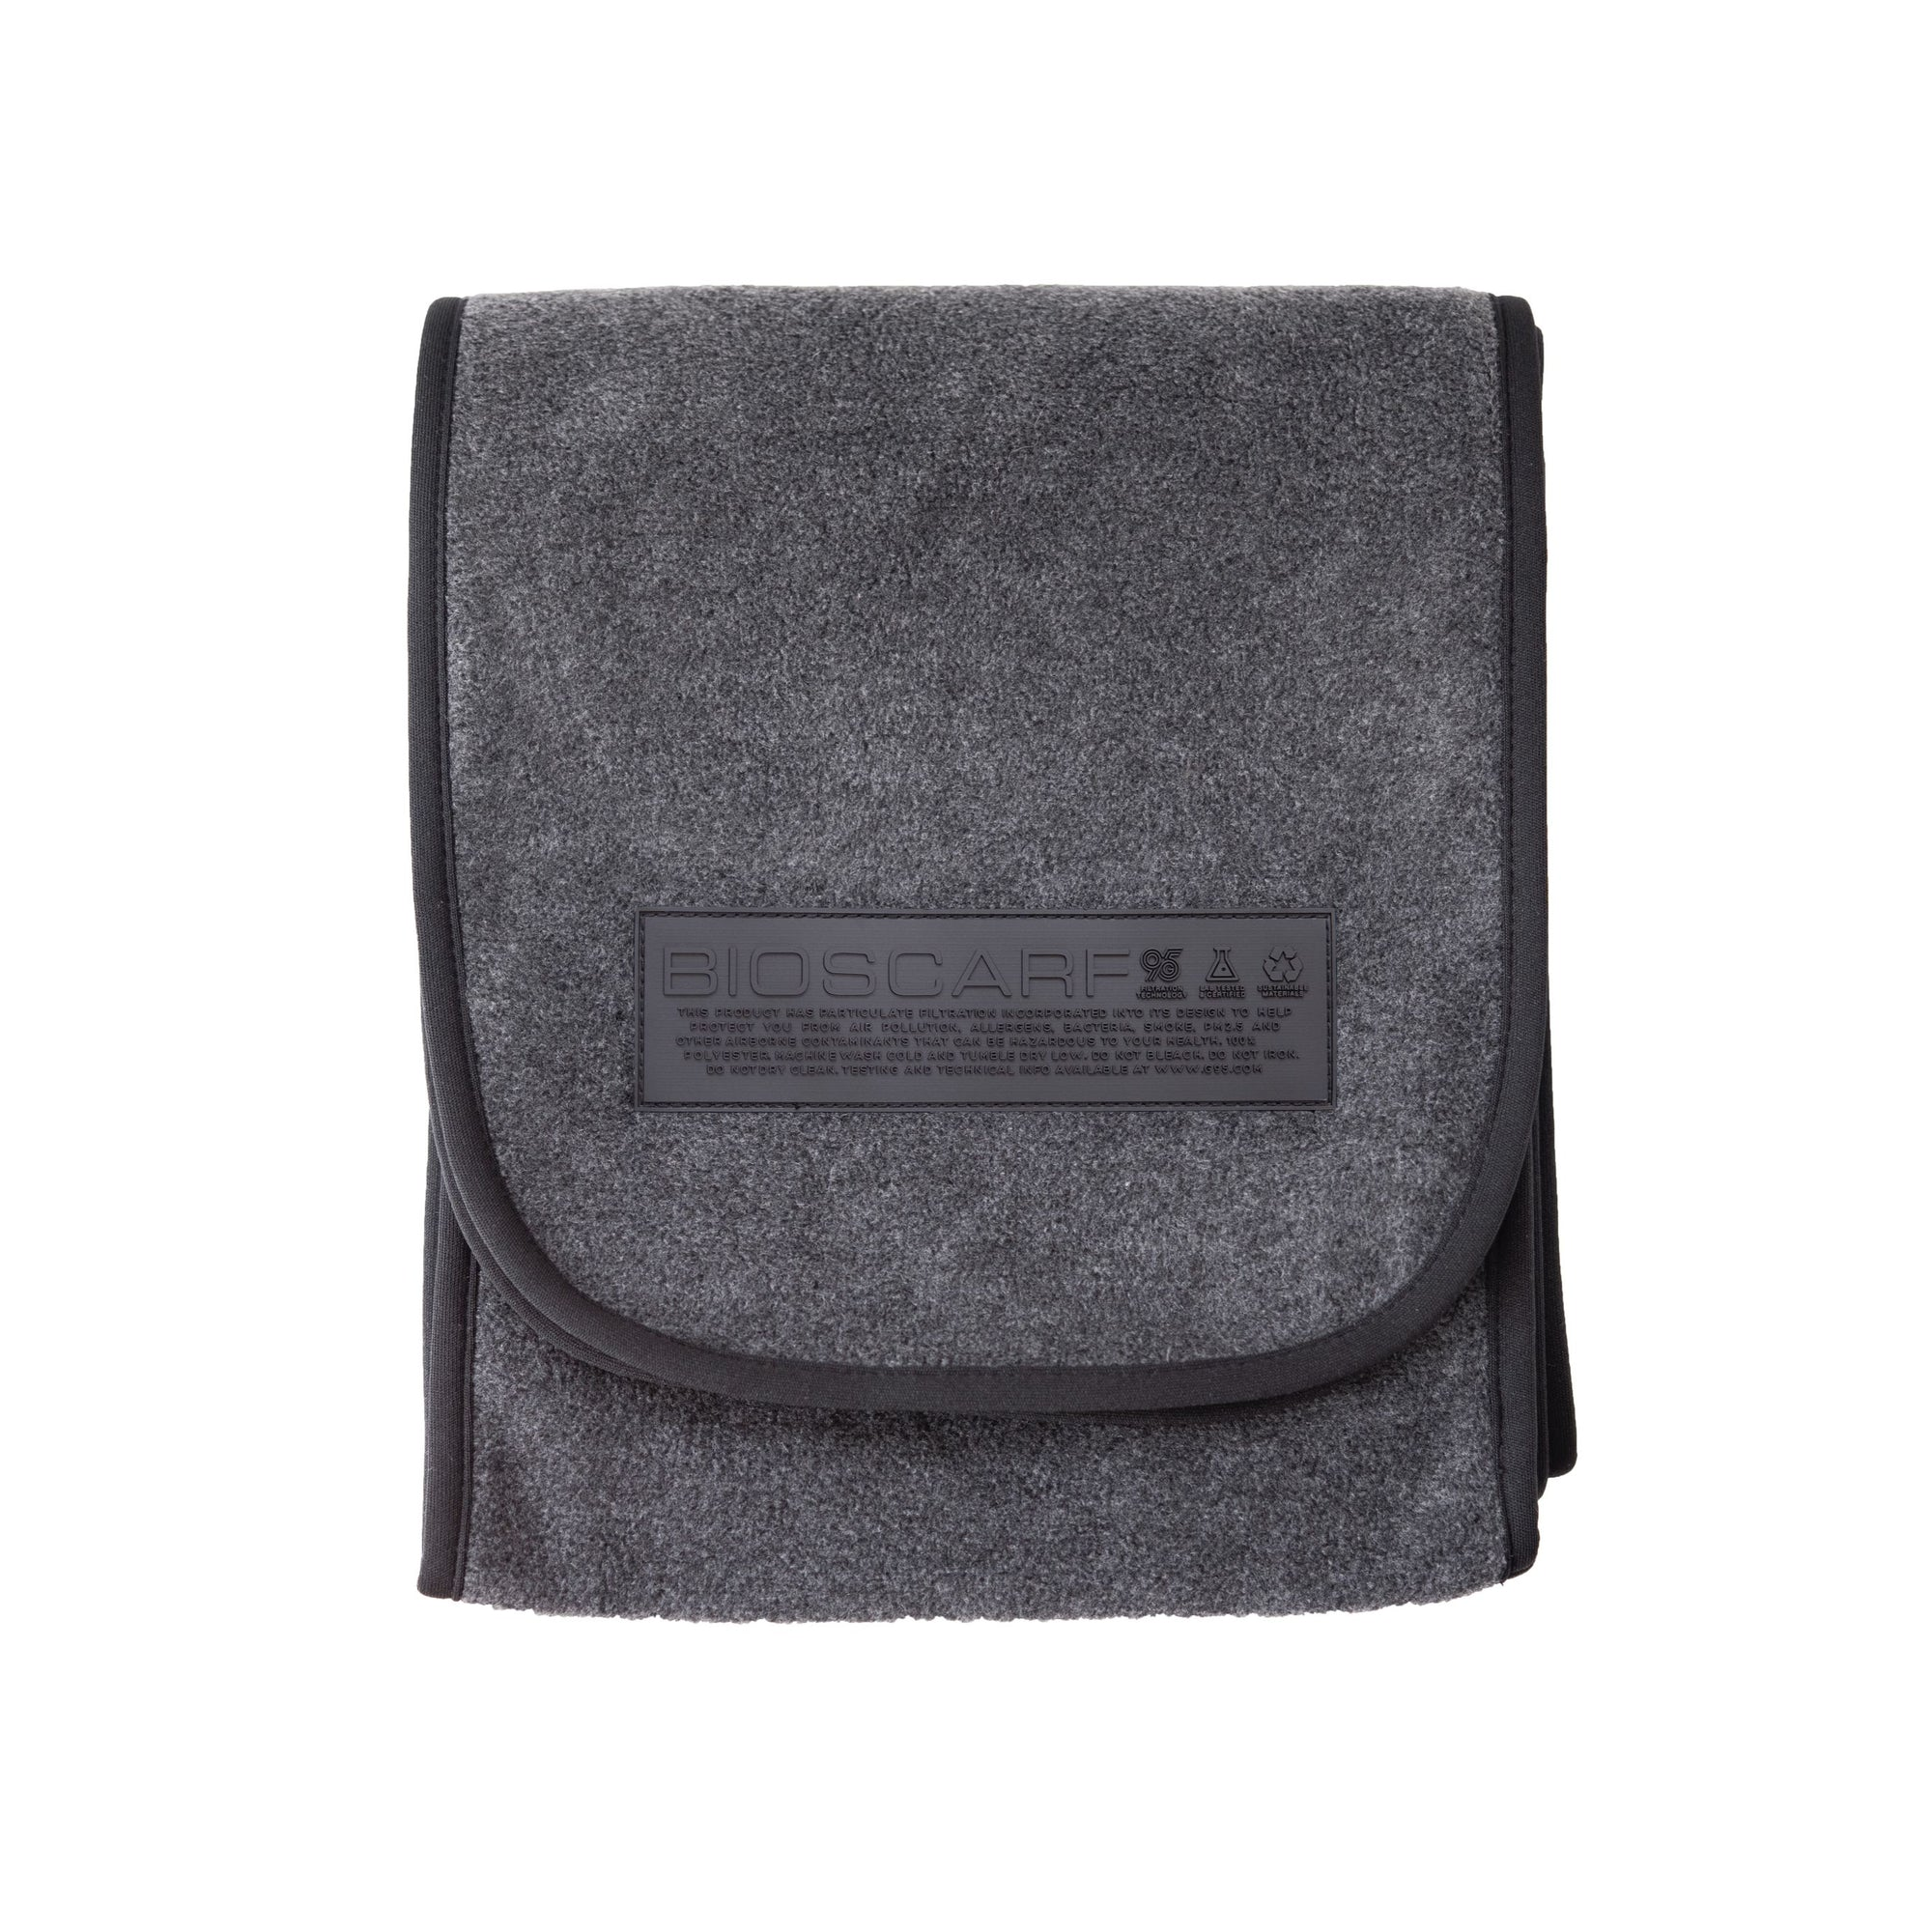 G95 Bioscarf Fleece Grey 1